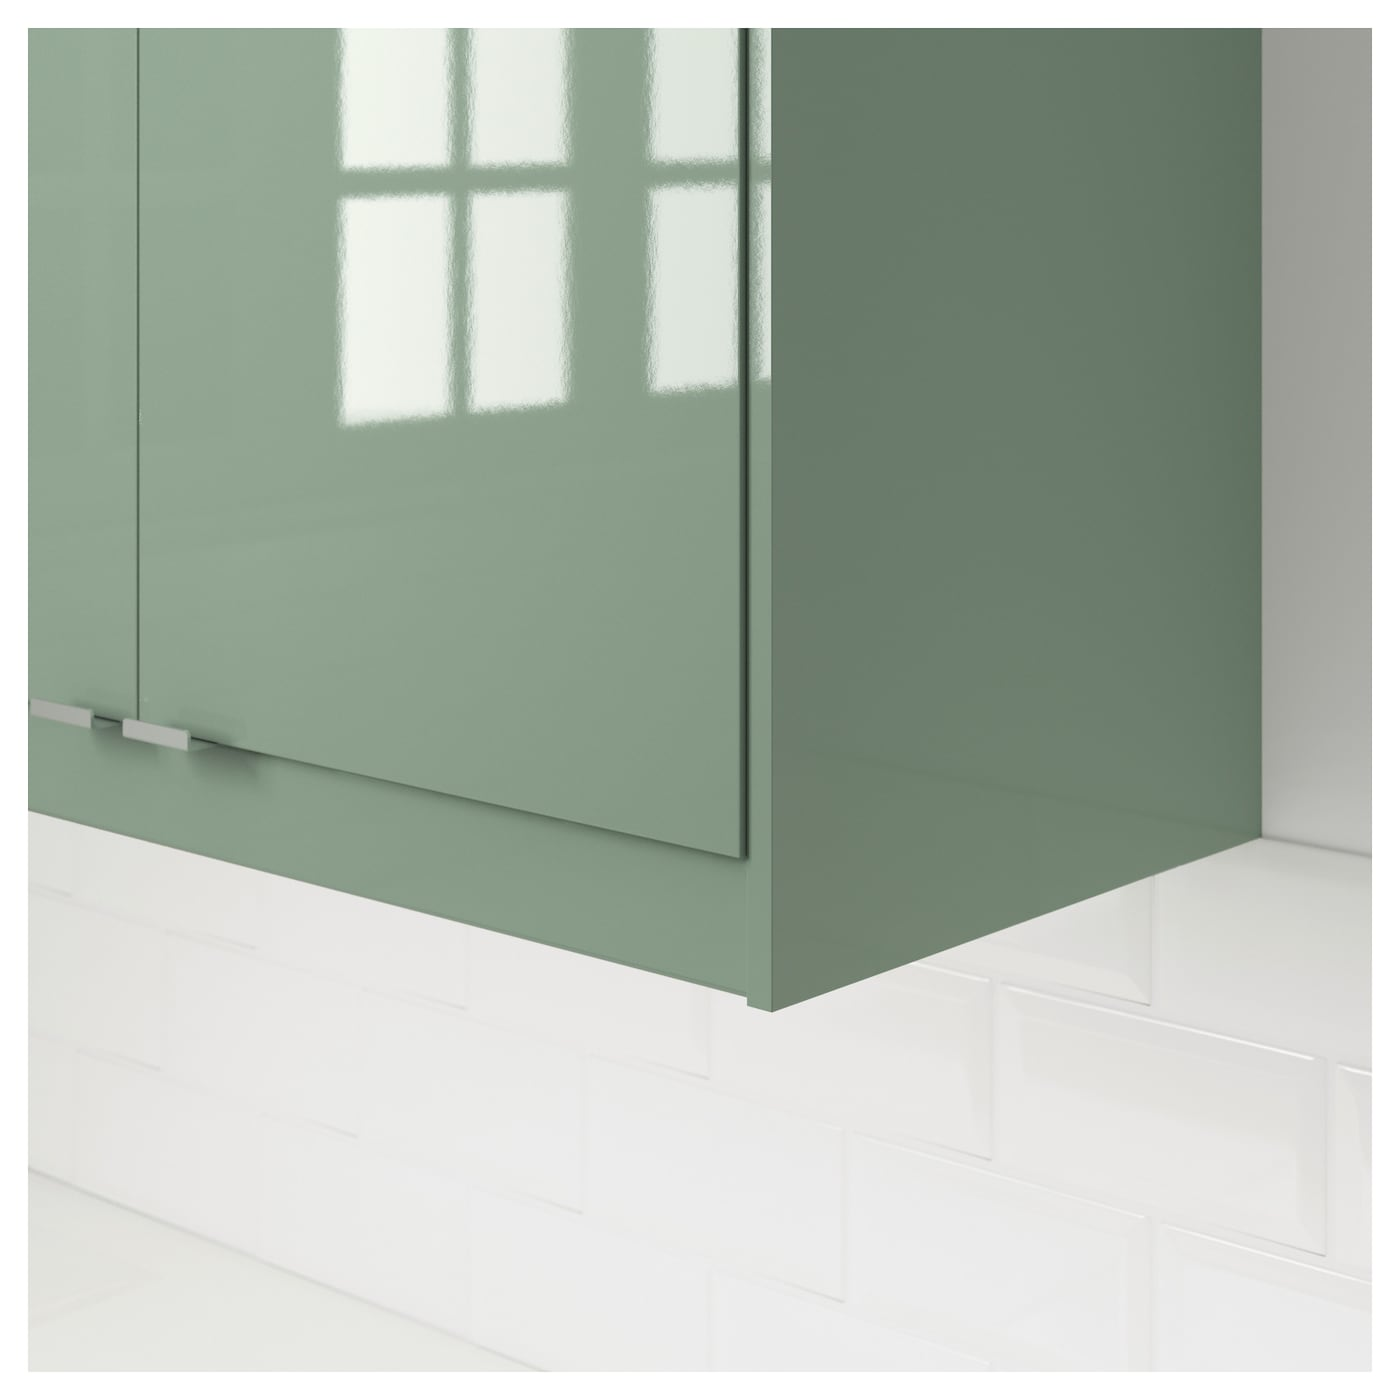 Stripping Kitchen Cabinets: KALLARP Rounded Deco Strip/moulding High-gloss Light Green